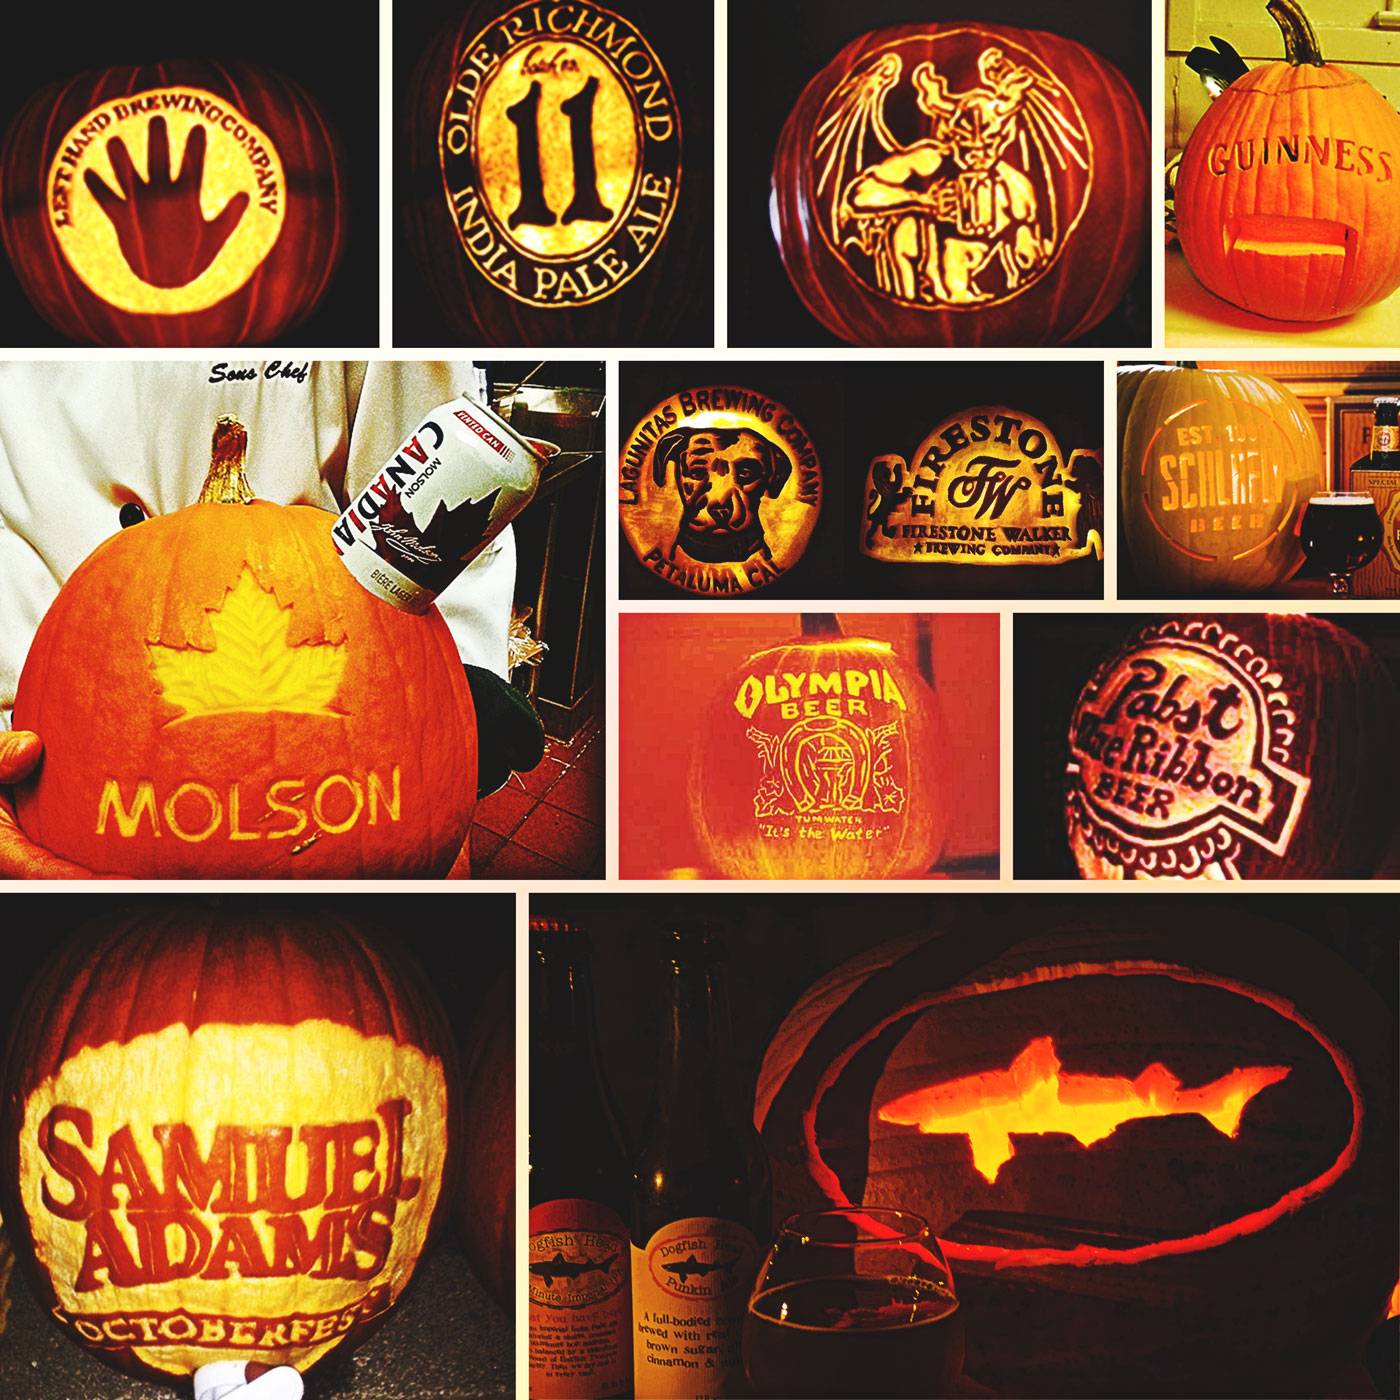 beer-branded-pumpkins-molson-canadian-guinness-firestone-brewing-company